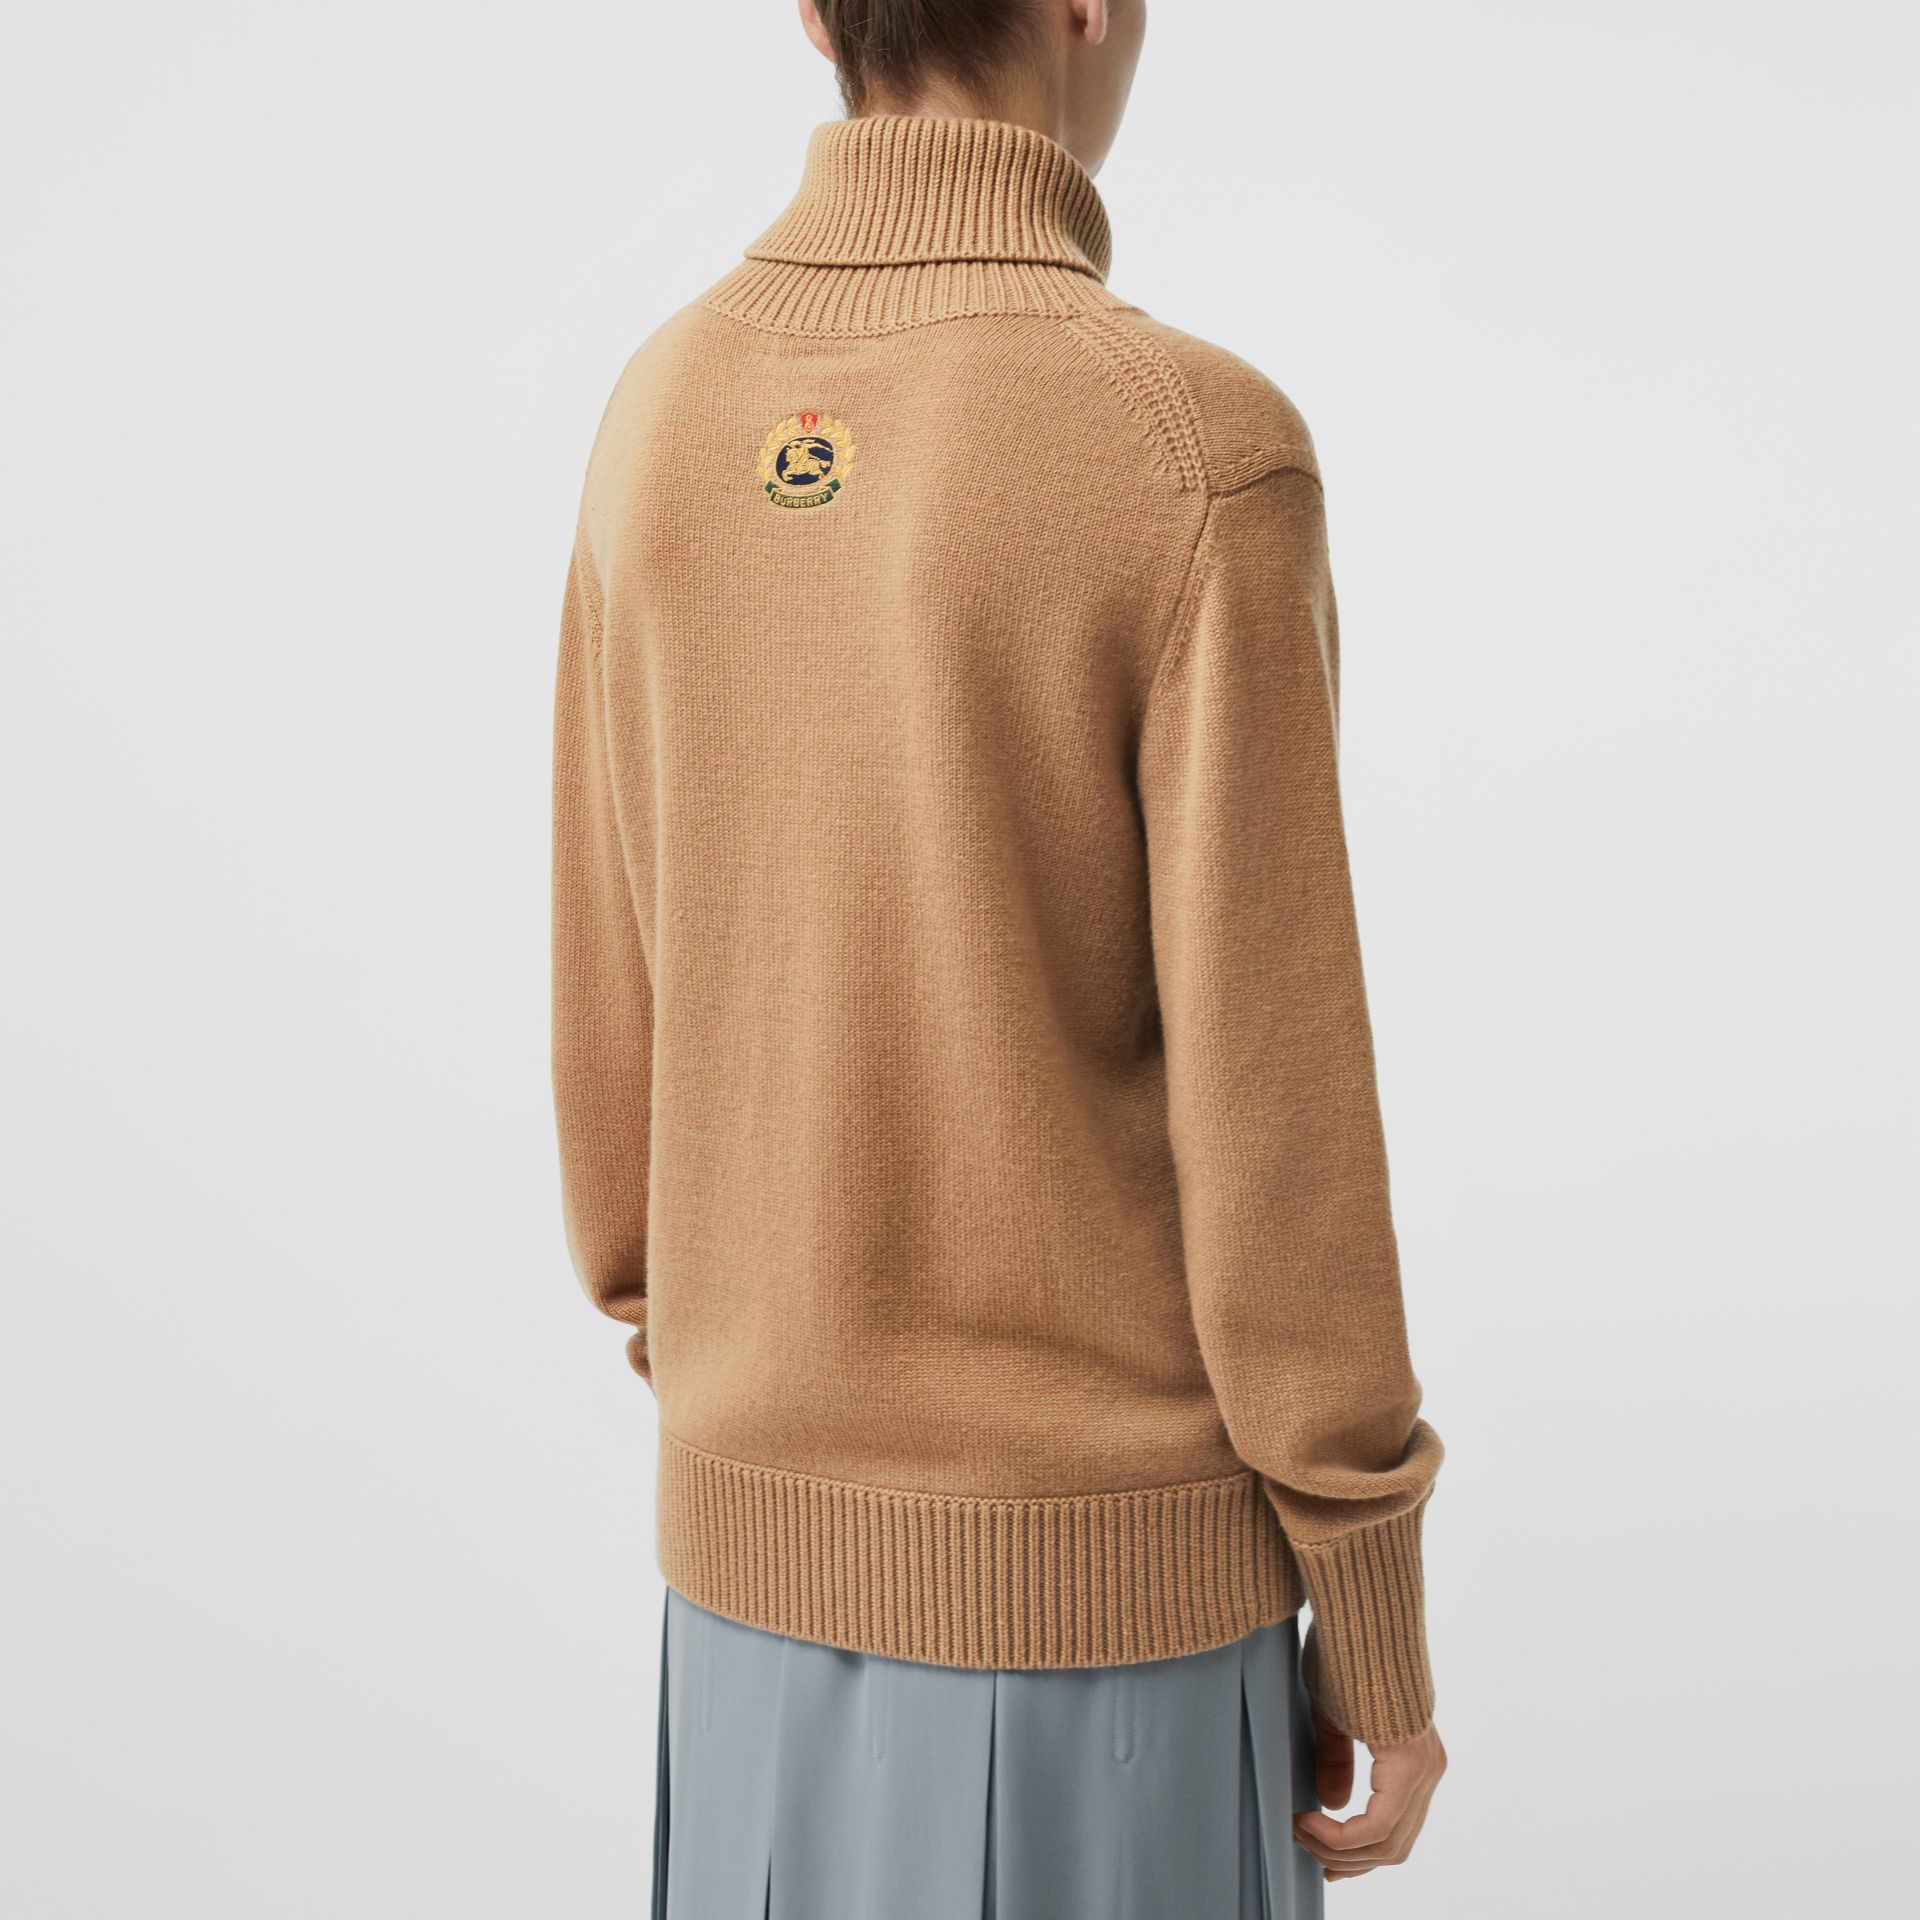 Embroidered Crest Cashmere Roll-neck Sweater in Camel - Women | Burberry Hong Kong - gallery image 2